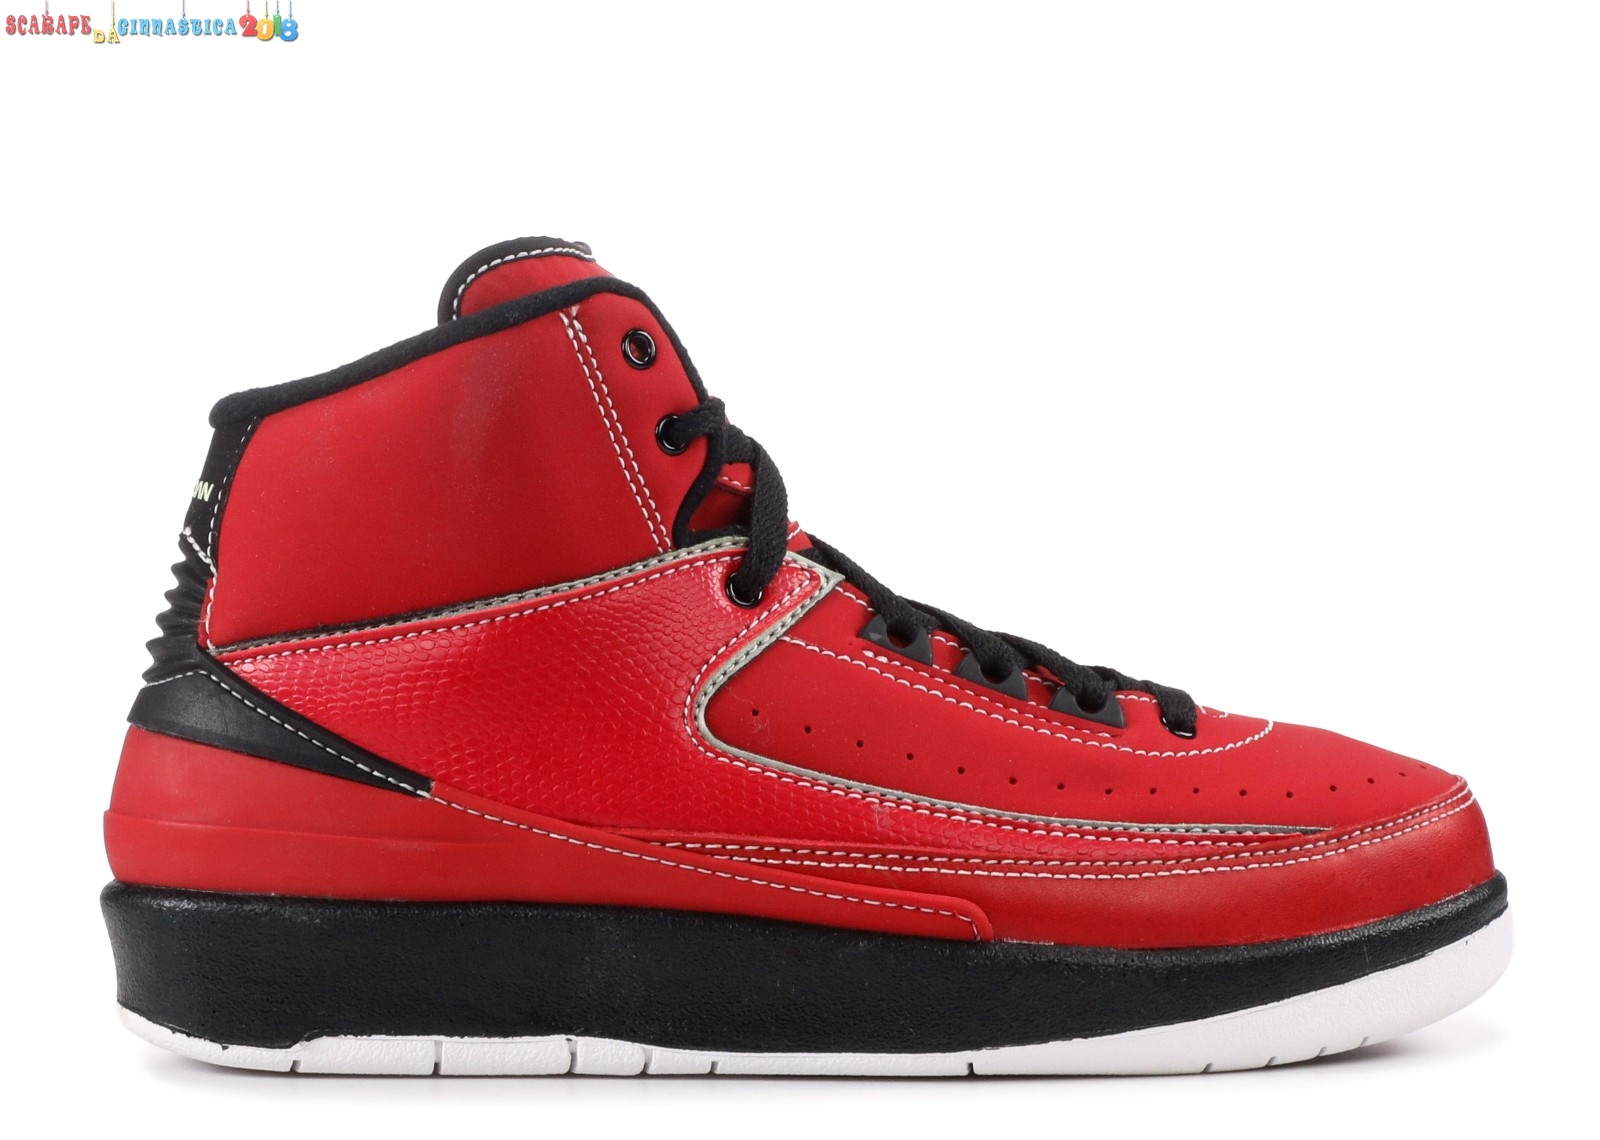 Air Jordan 2 Retro (Gs) Rosso Nero (395718-601) Replica